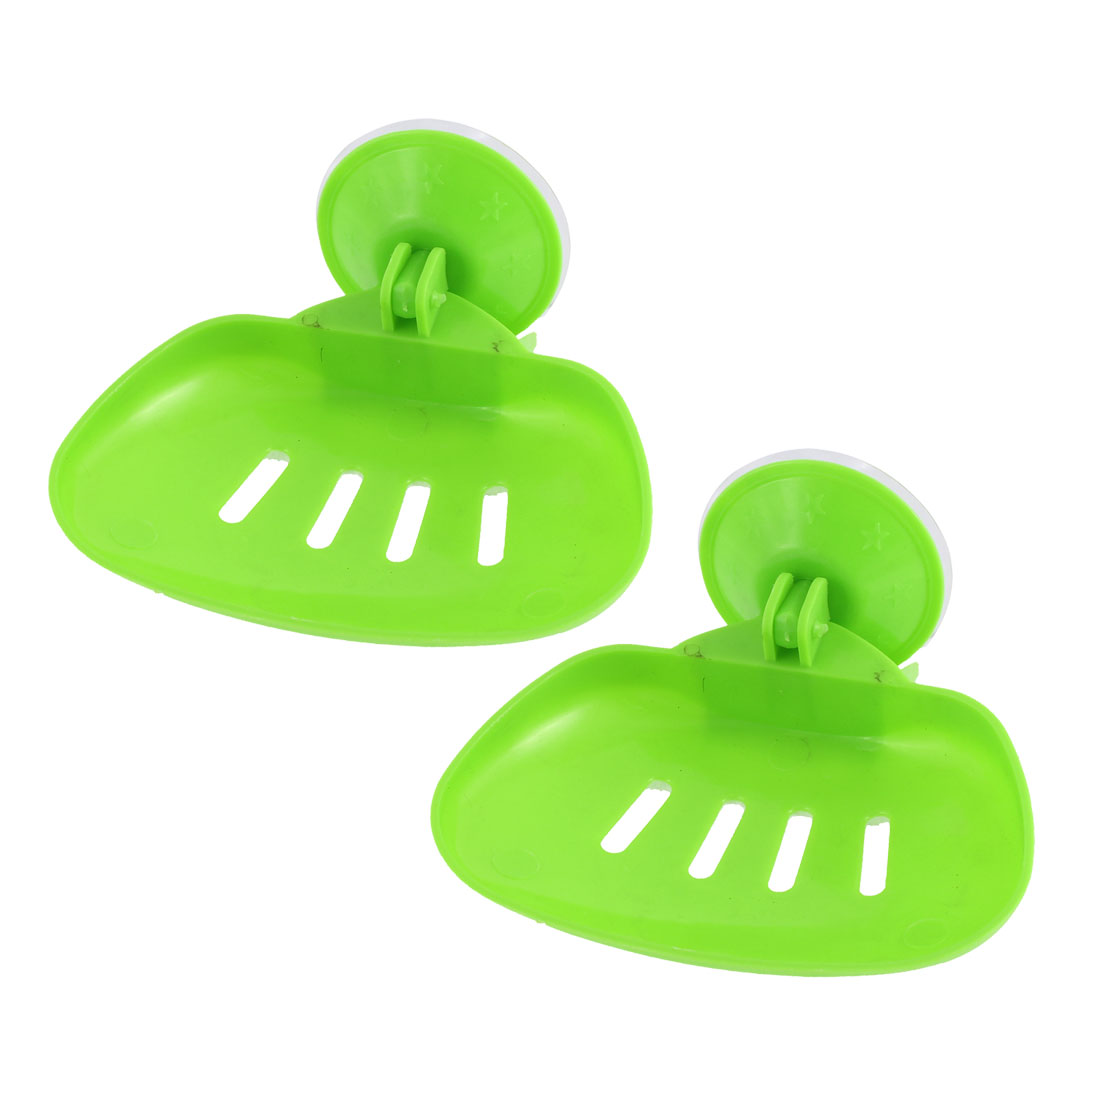 Household Bathroom Plastic Hollow Out Suction Cup Soap Holder White 2 Pcs